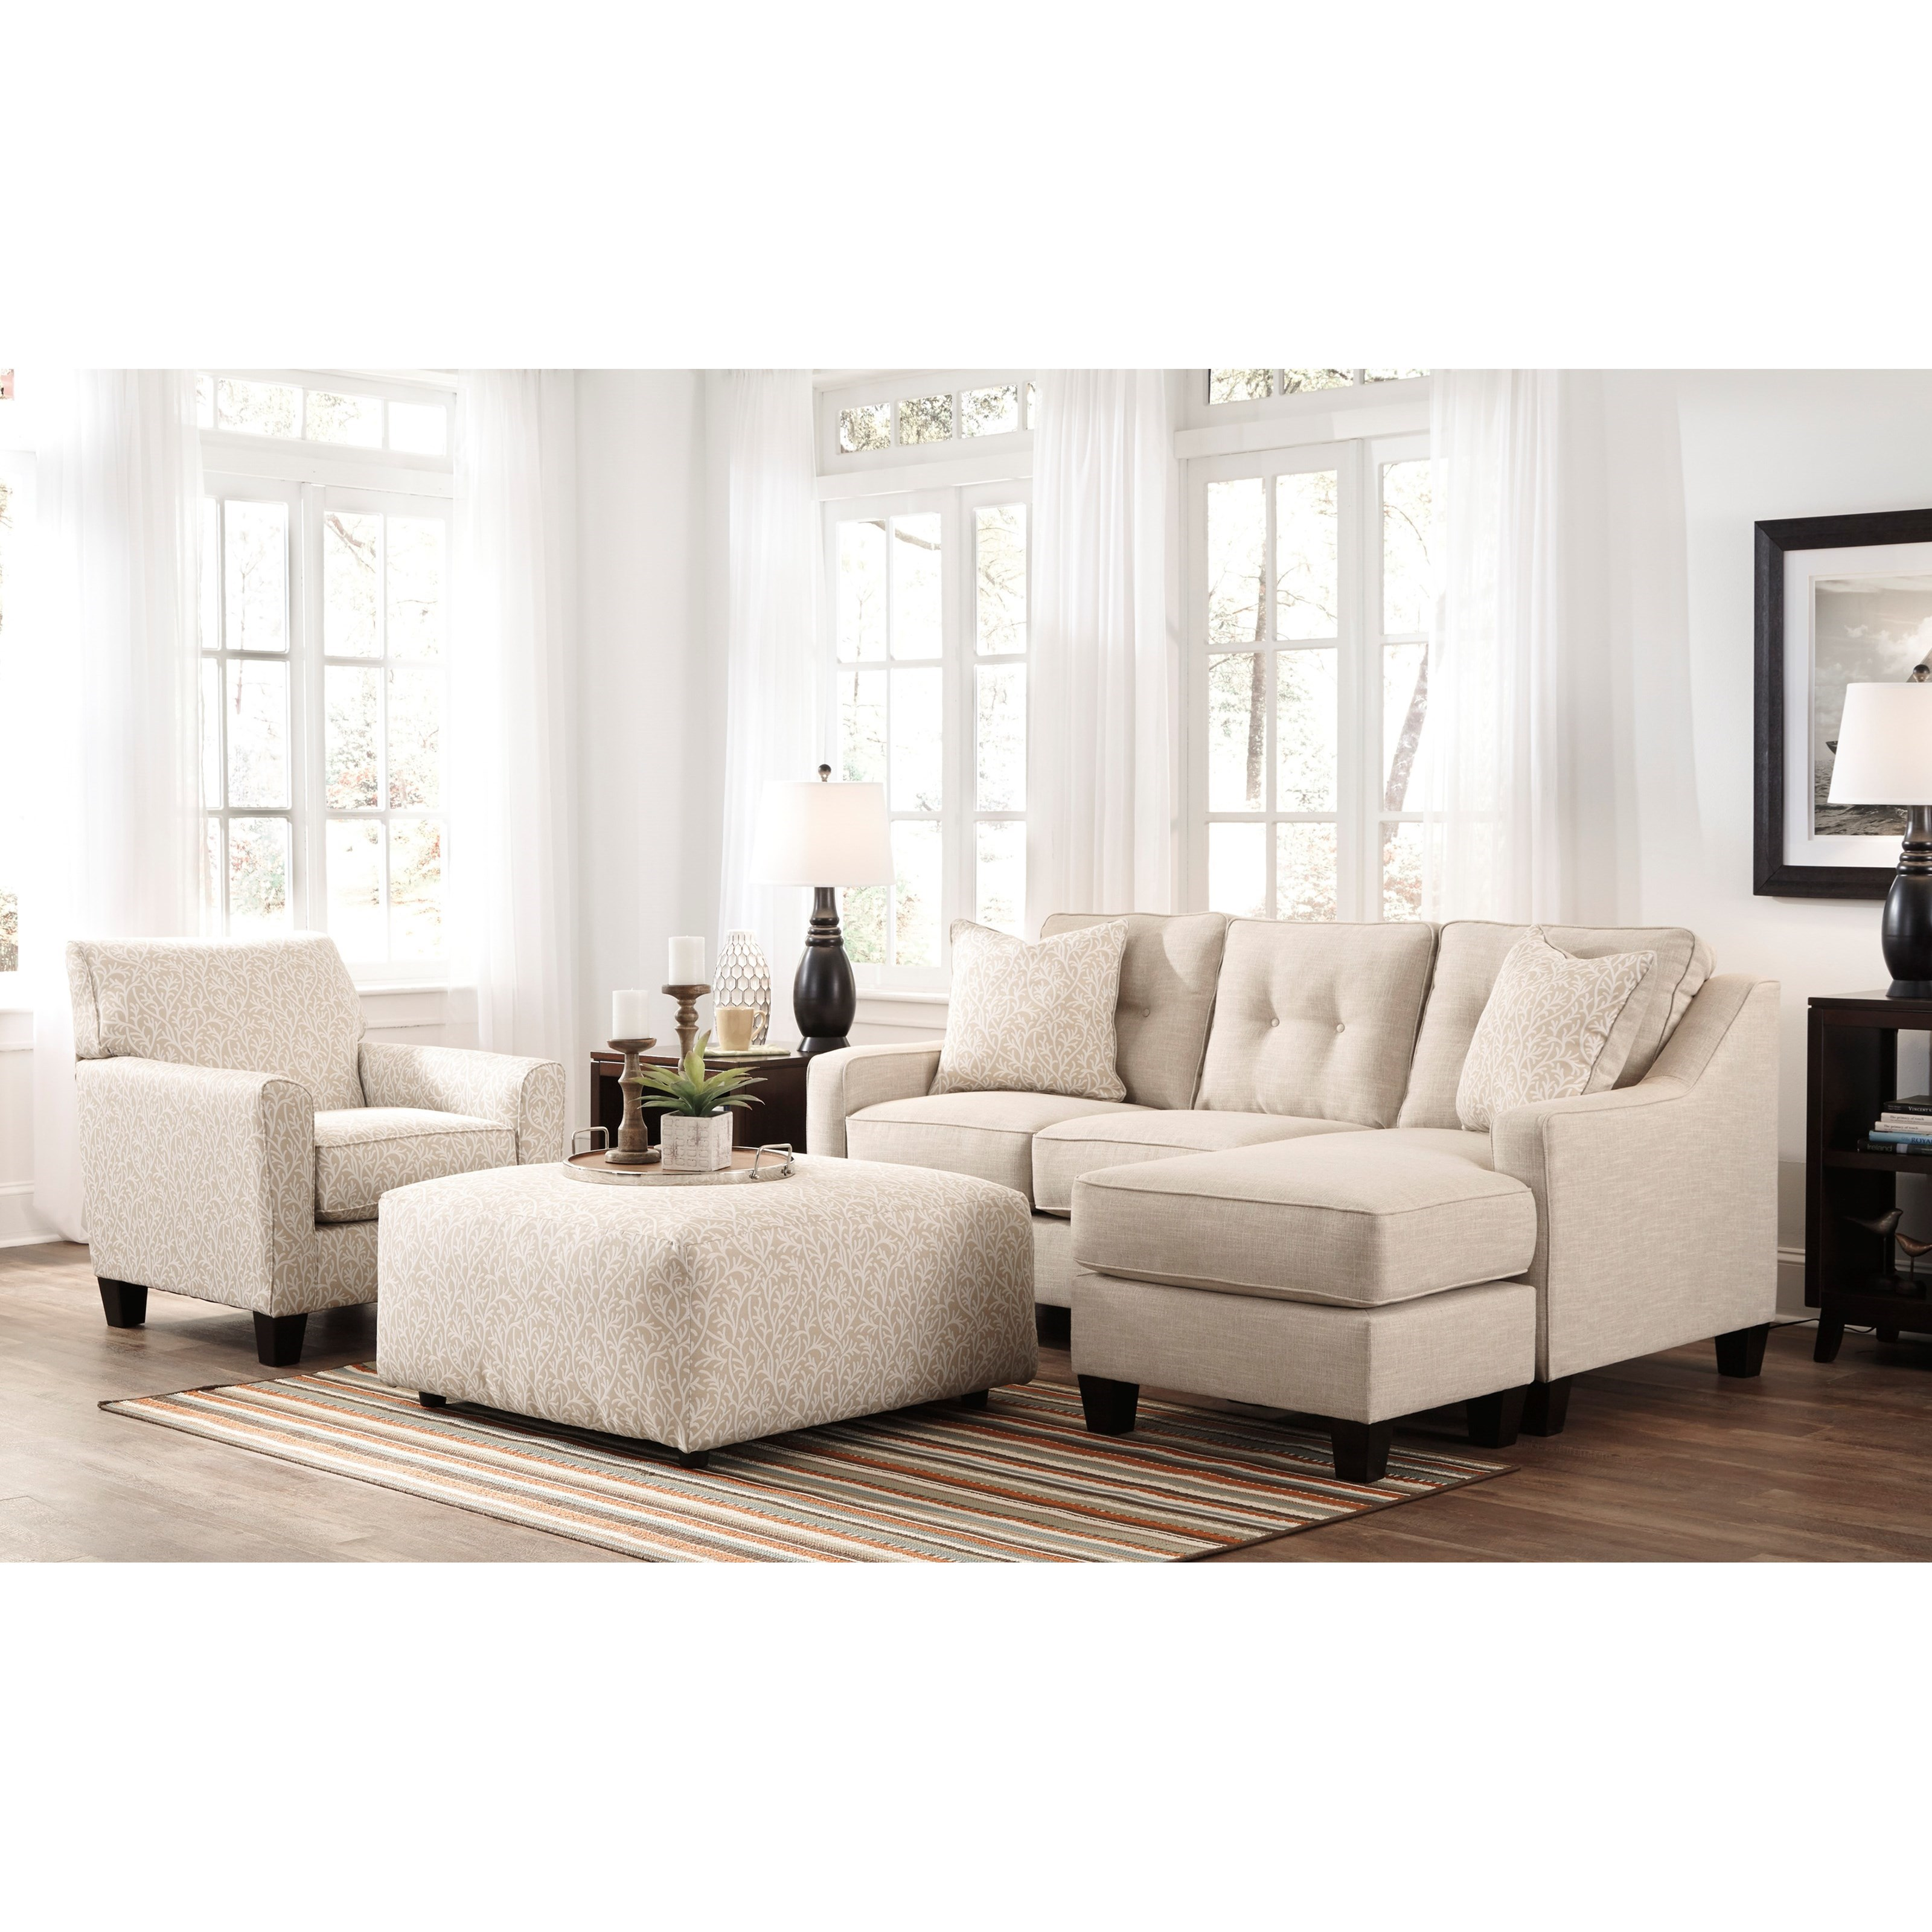 Benchcraft Aldie Nuvella Stationary Living Room Group - Item Number: 68705 Living Room Group 6